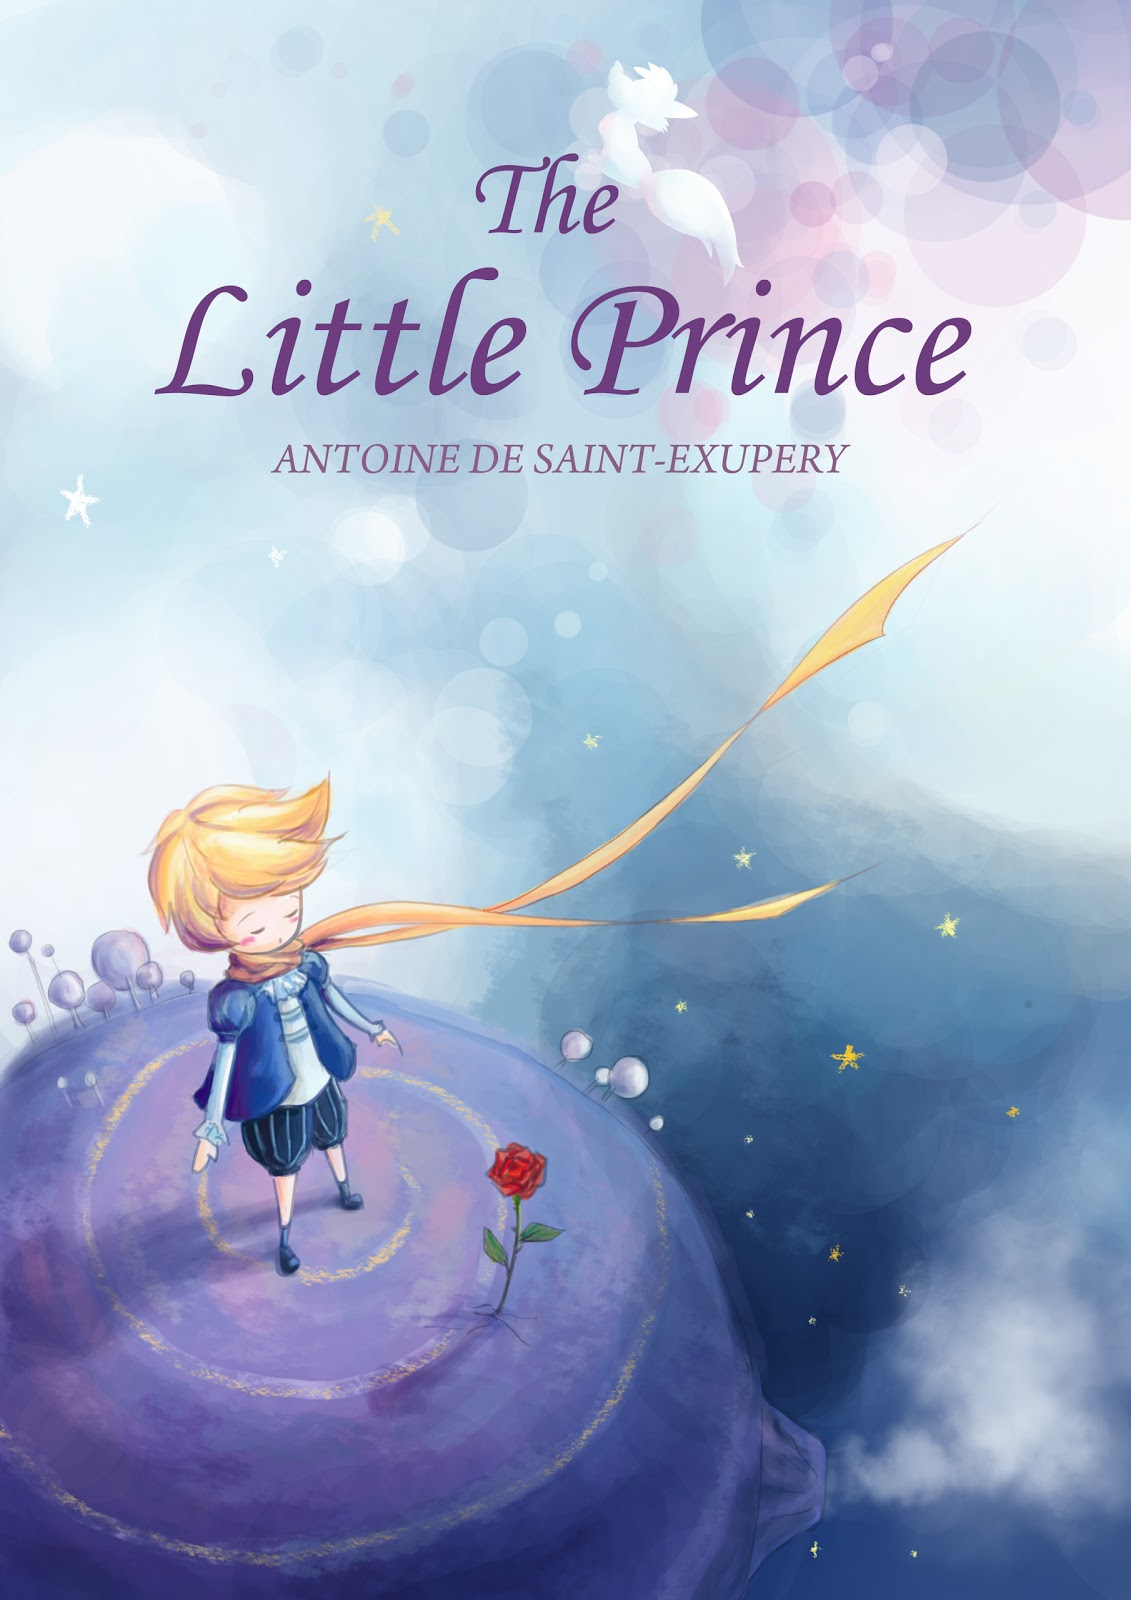 Sooing S Swing The Little Prince